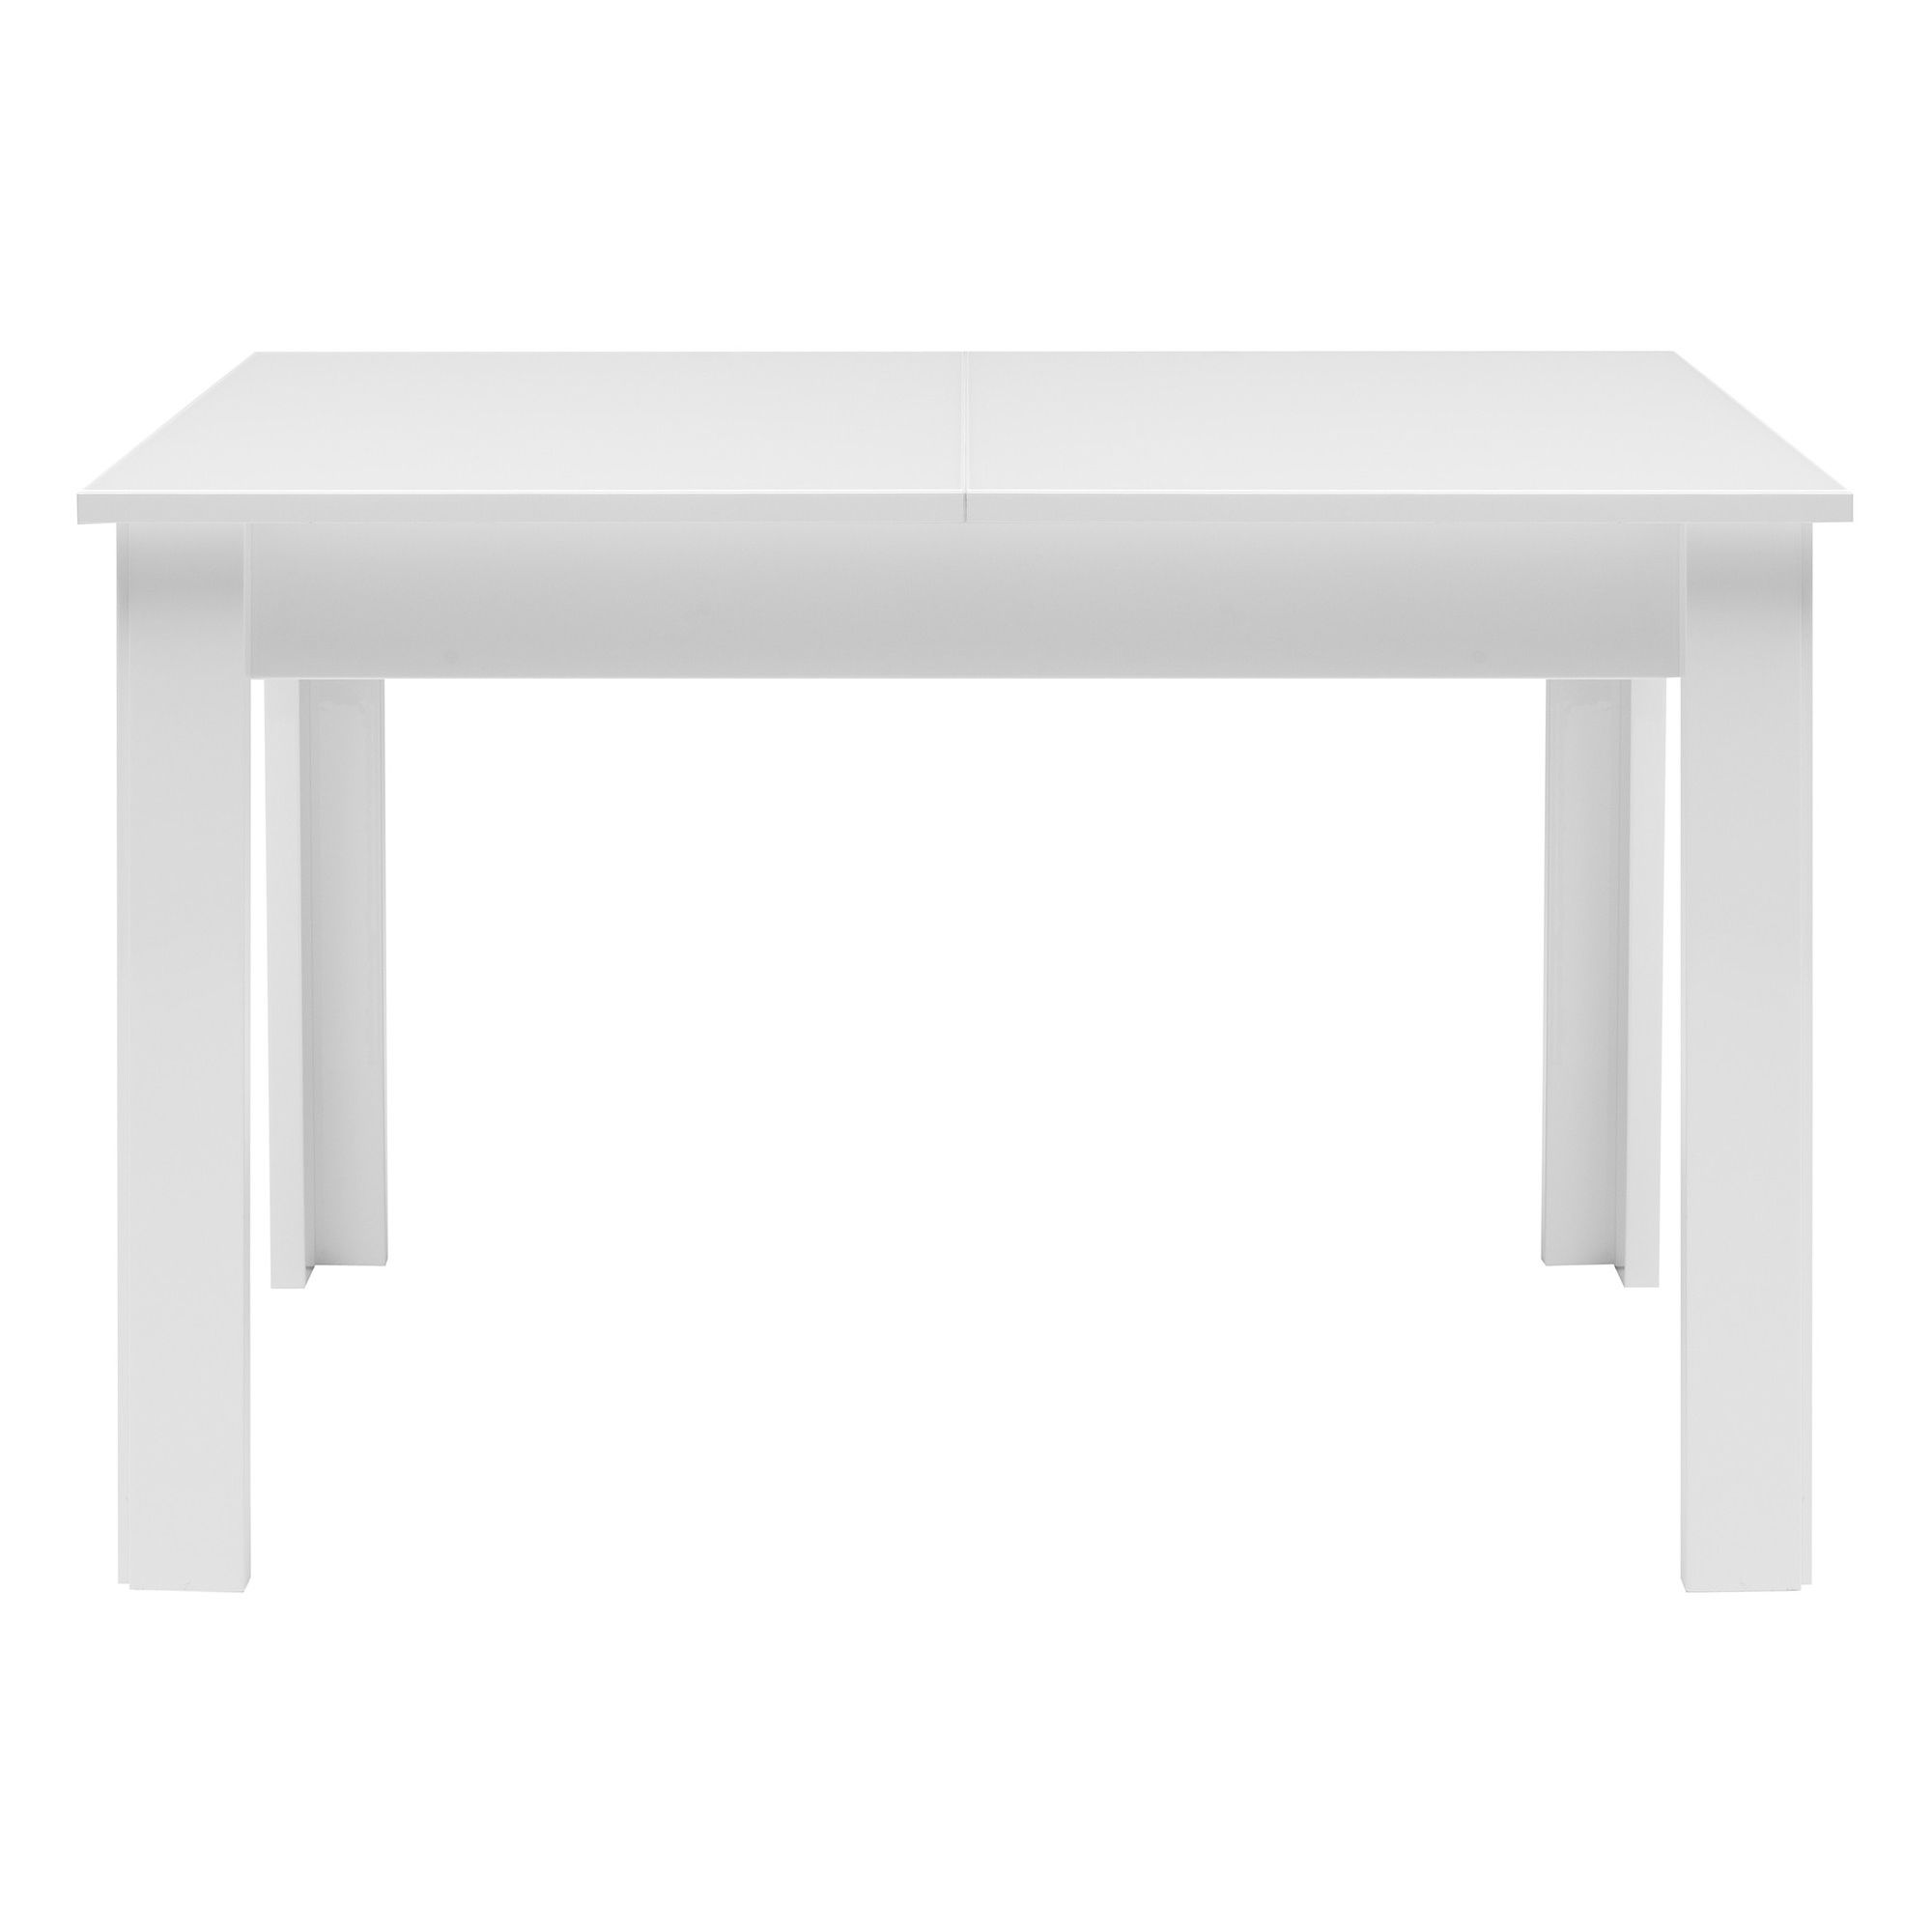 Caxton Manhattan Table with 4 Chairs in White Gloss at Tescos Direct